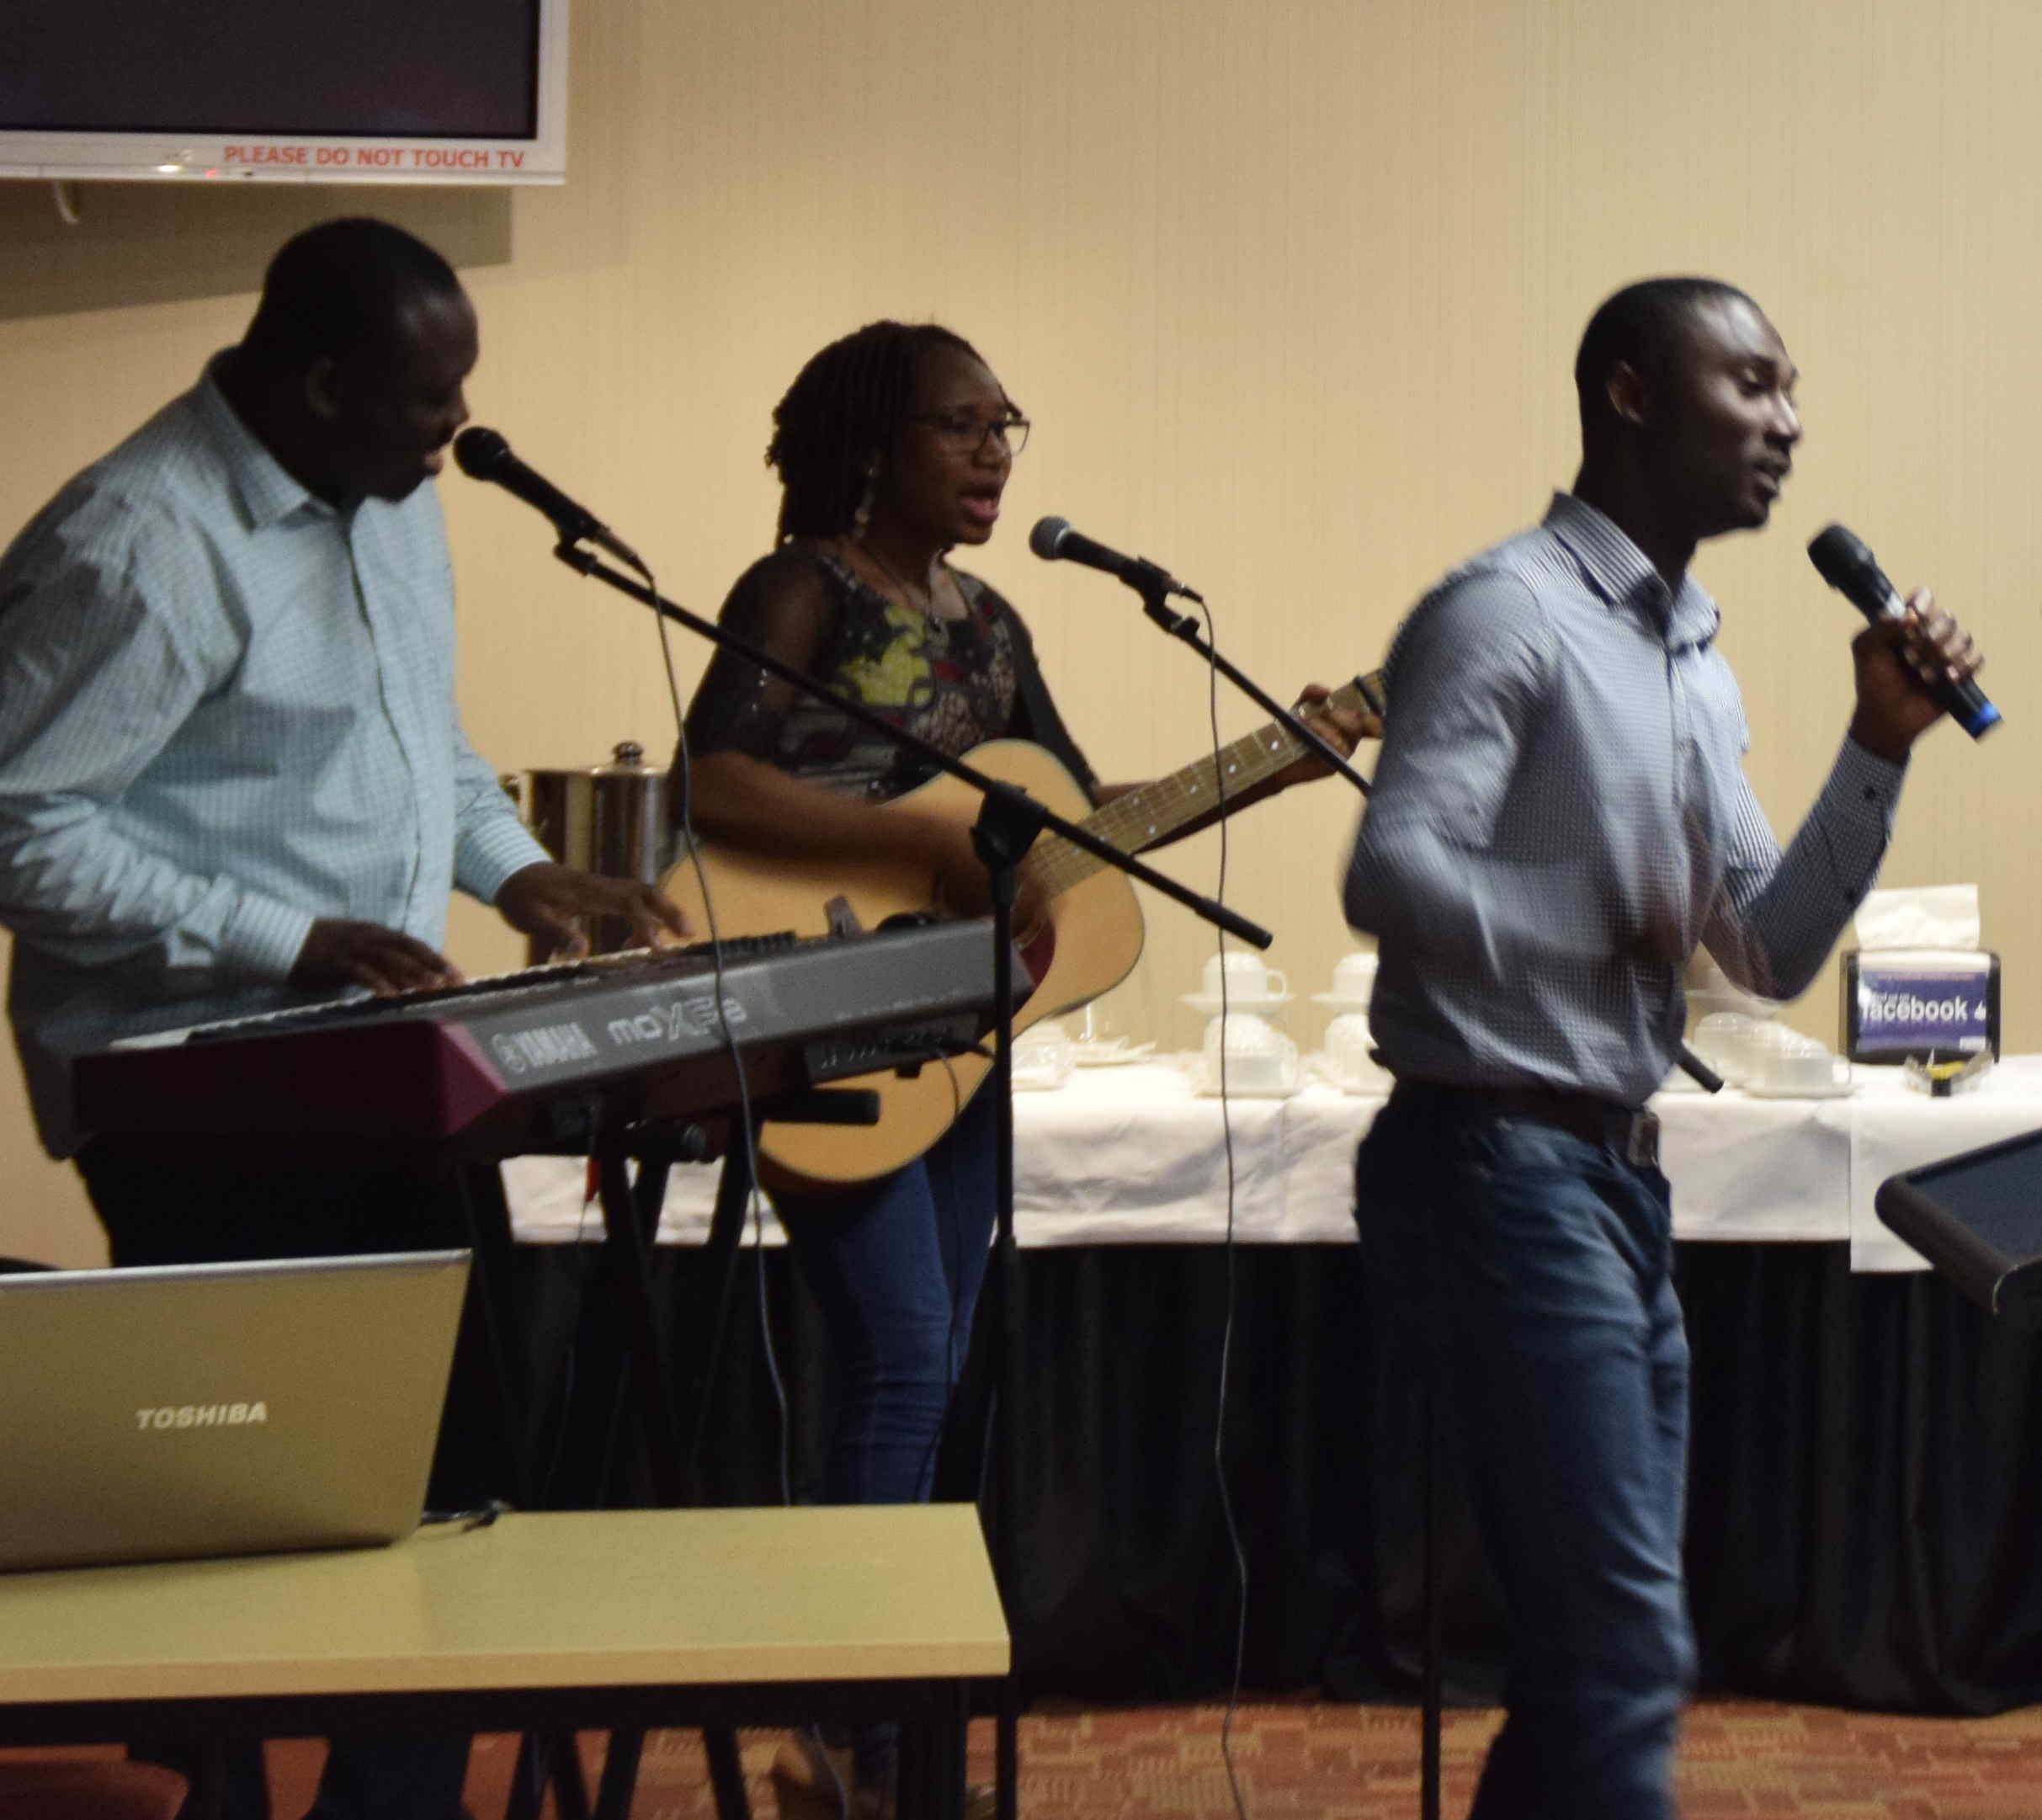 The gathering was entertained by Jumo, Jennifer and Sola playing some traditional West African music